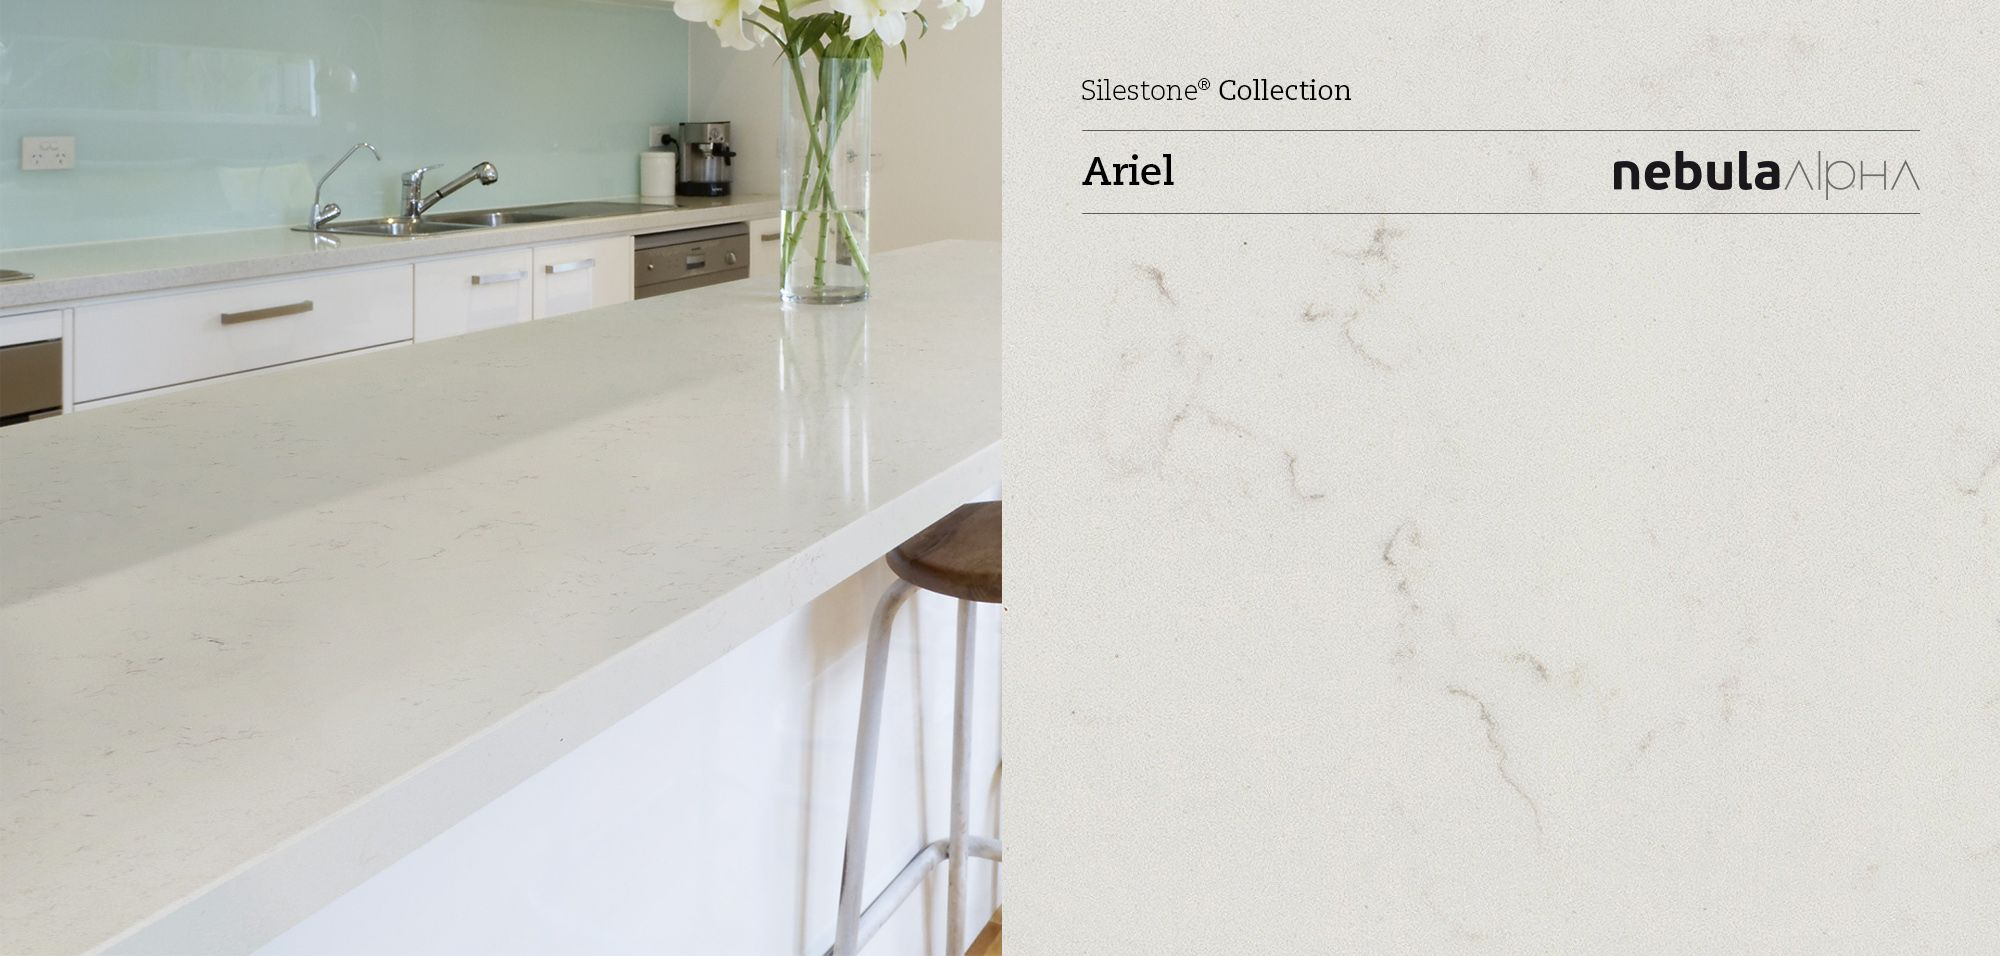 Silestone Ariel This Is The One Denny And I Liked The Best